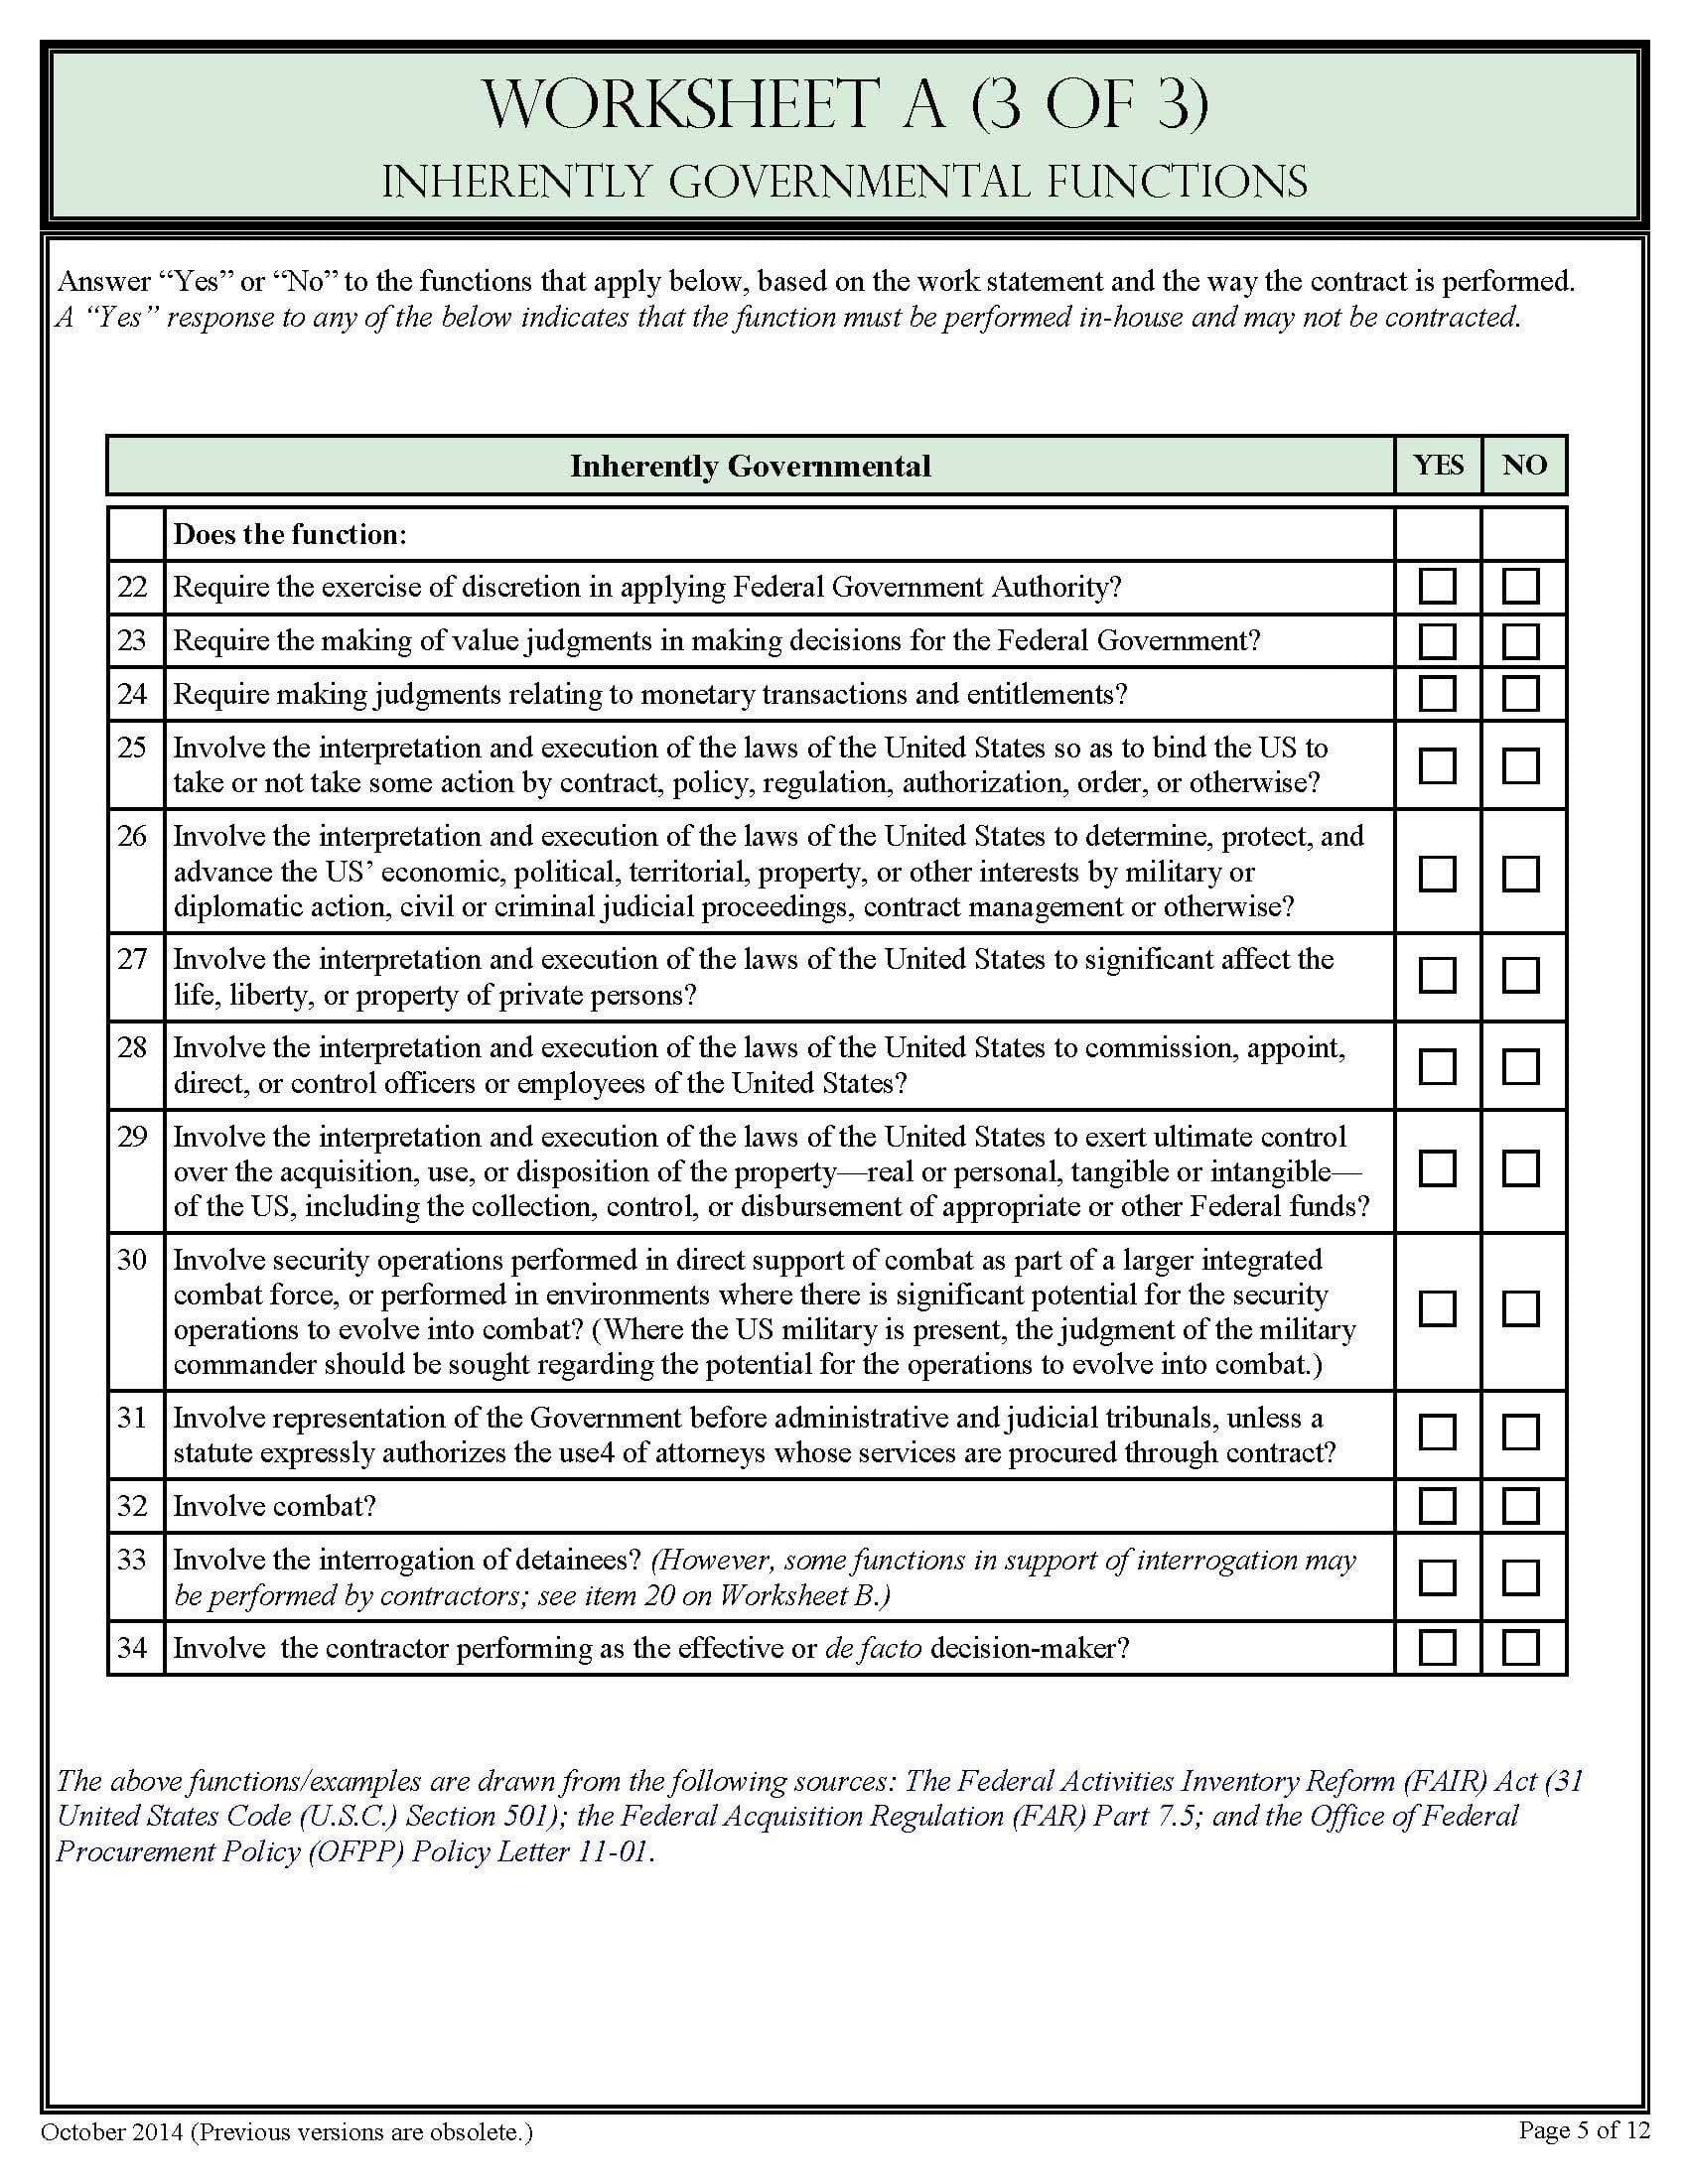 Chapter 1 Section 4 The Reformation Continues Worksheet Answers Pertaining To Chapter 1 Section 4 The Reformation Continues Worksheet Answers